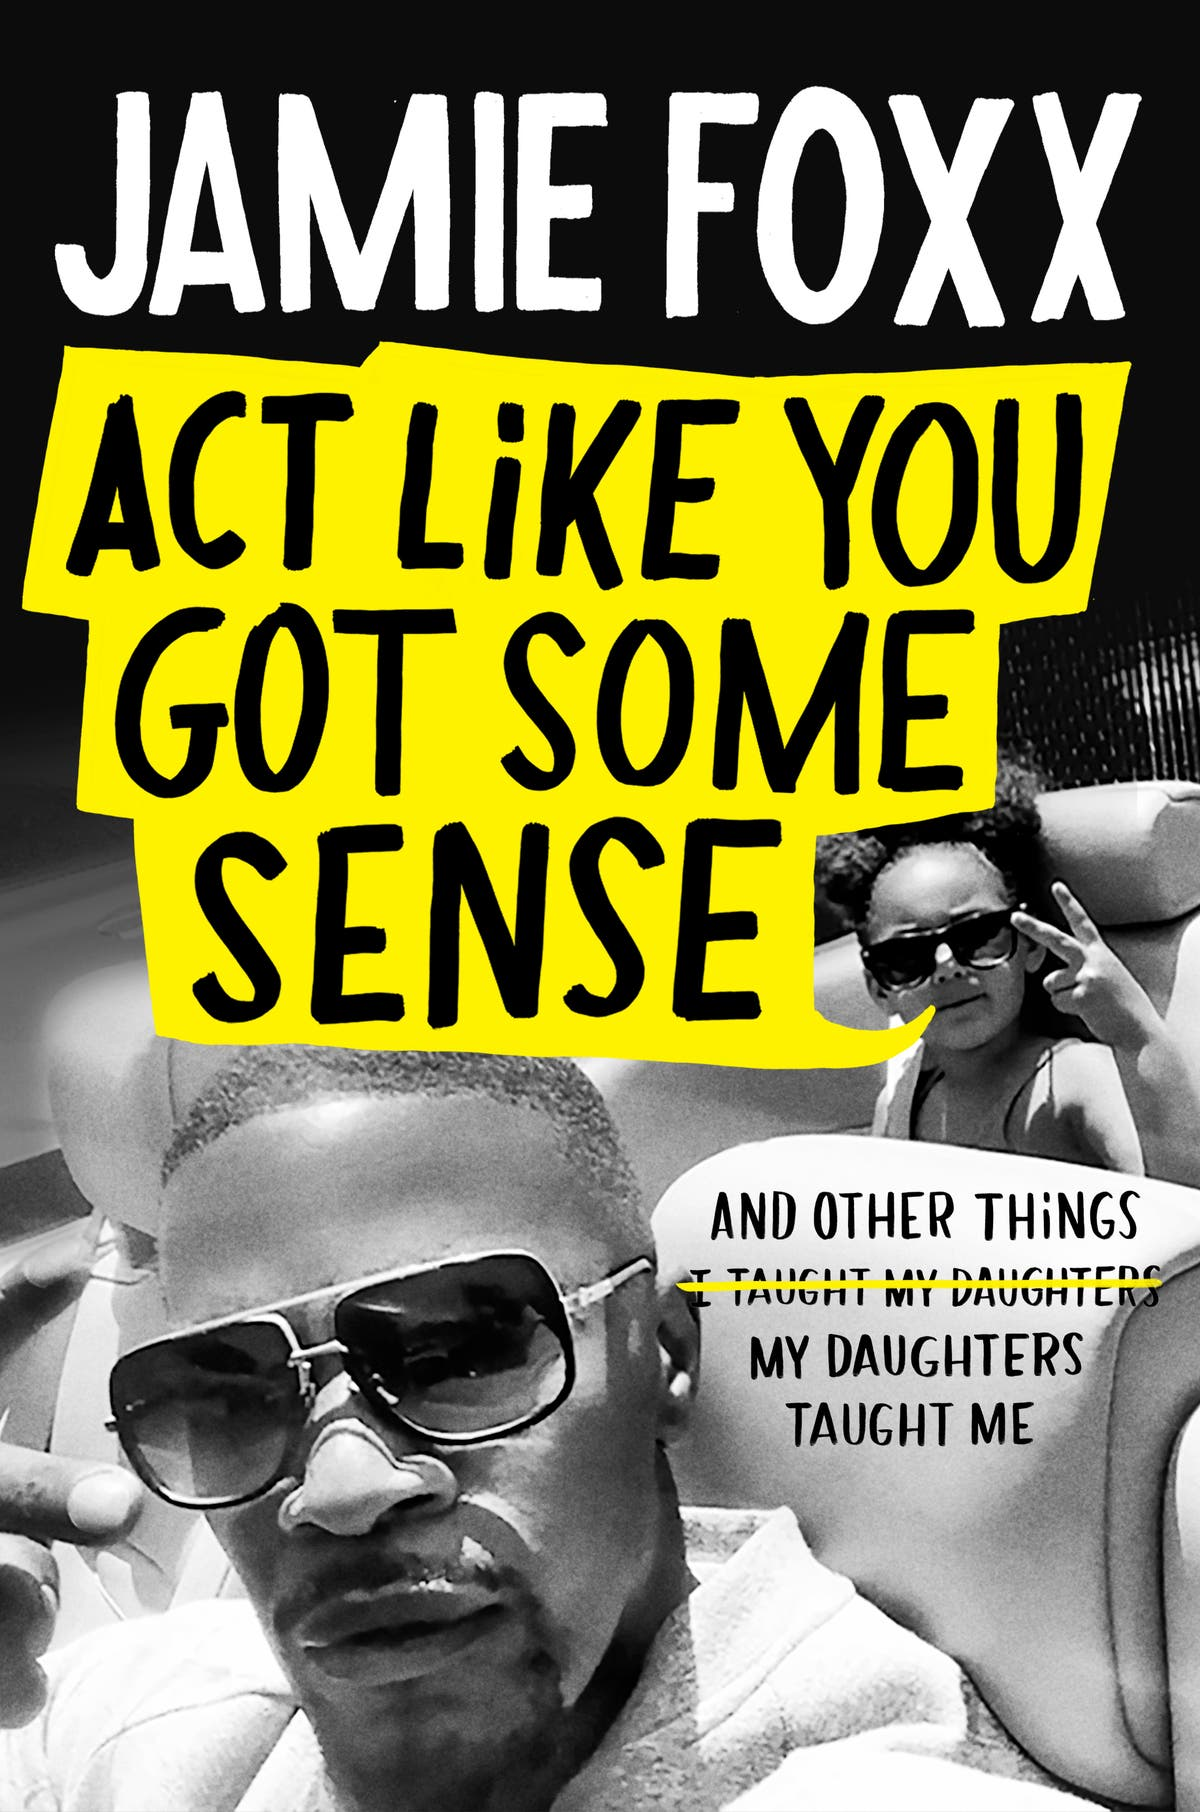 Jamie Foxx shares parenting lessons and stories in new book